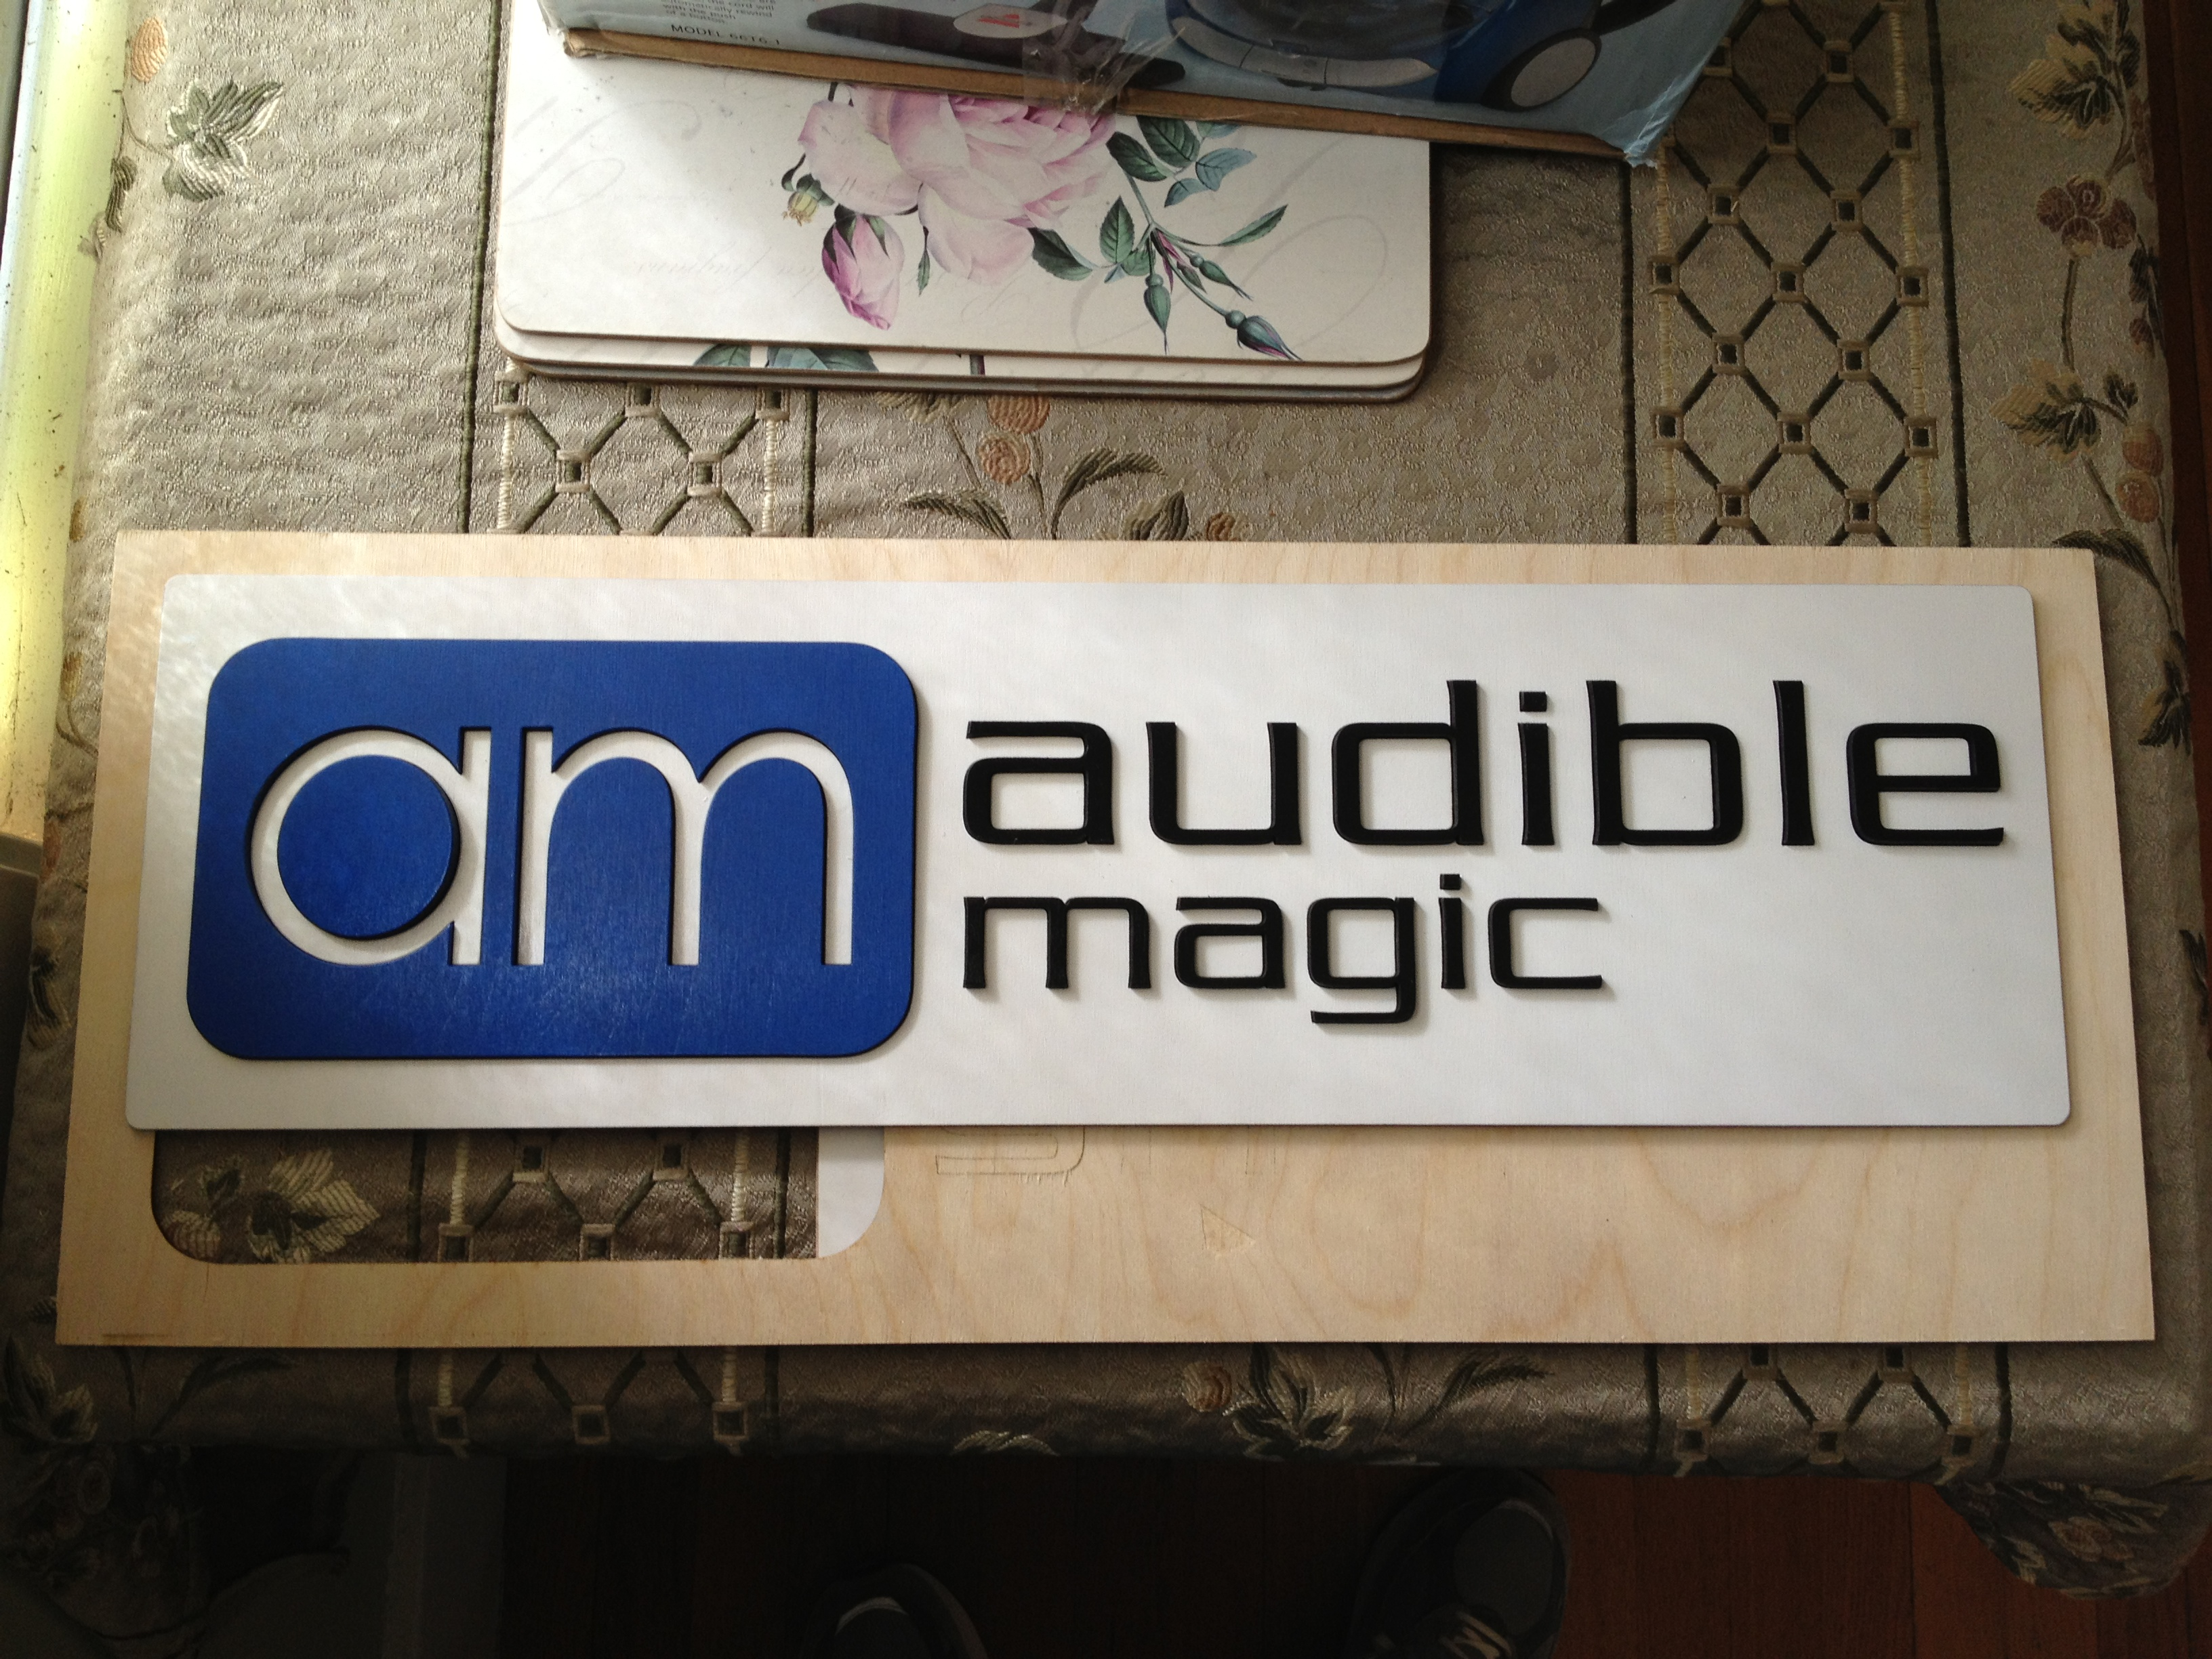 audible magic sign